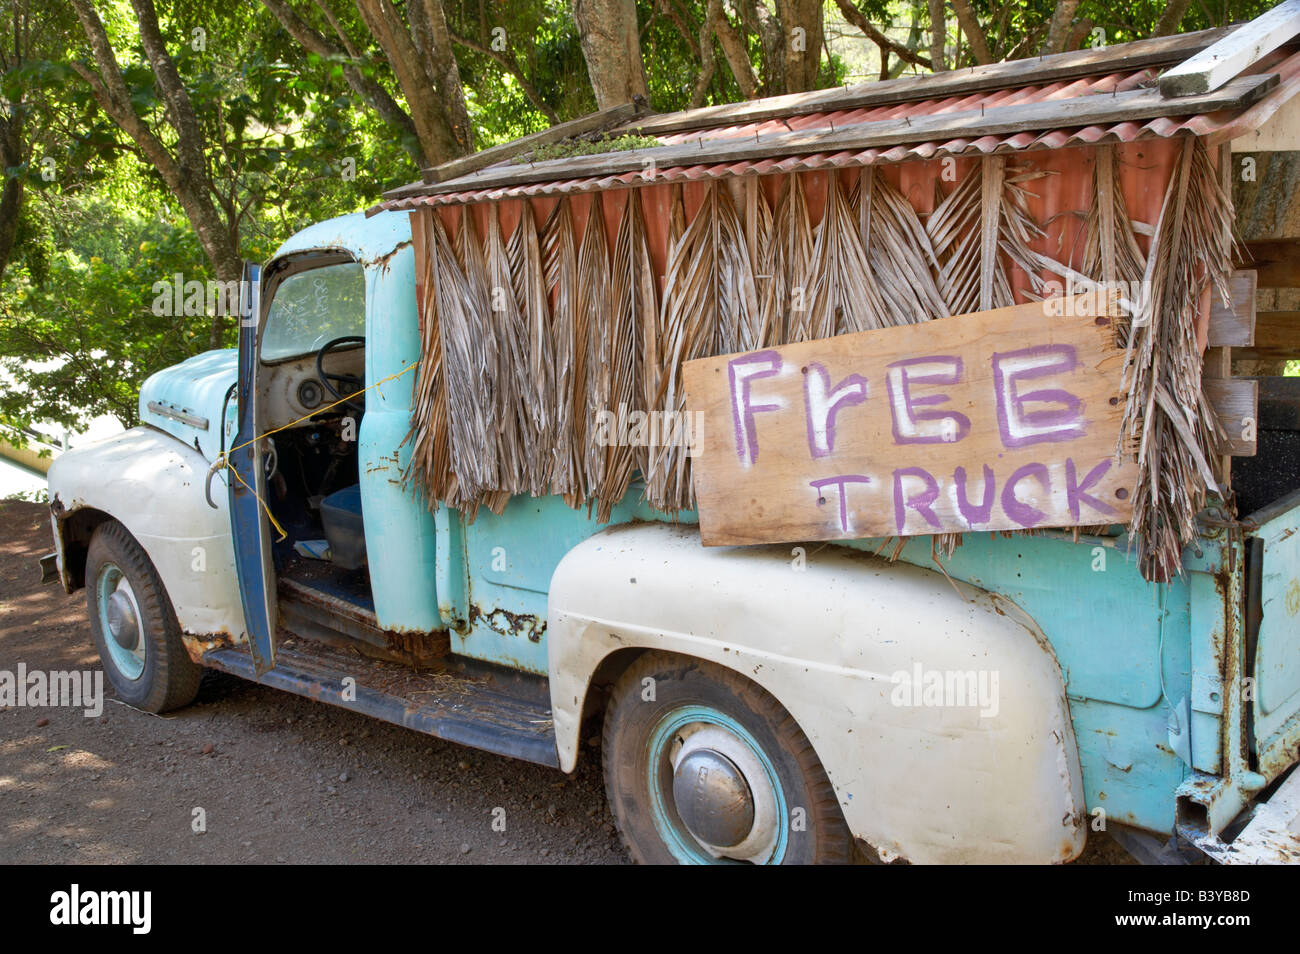 Old pick up truck for sale Maui Hawaii Stock Photo: 19655901 - Alamy